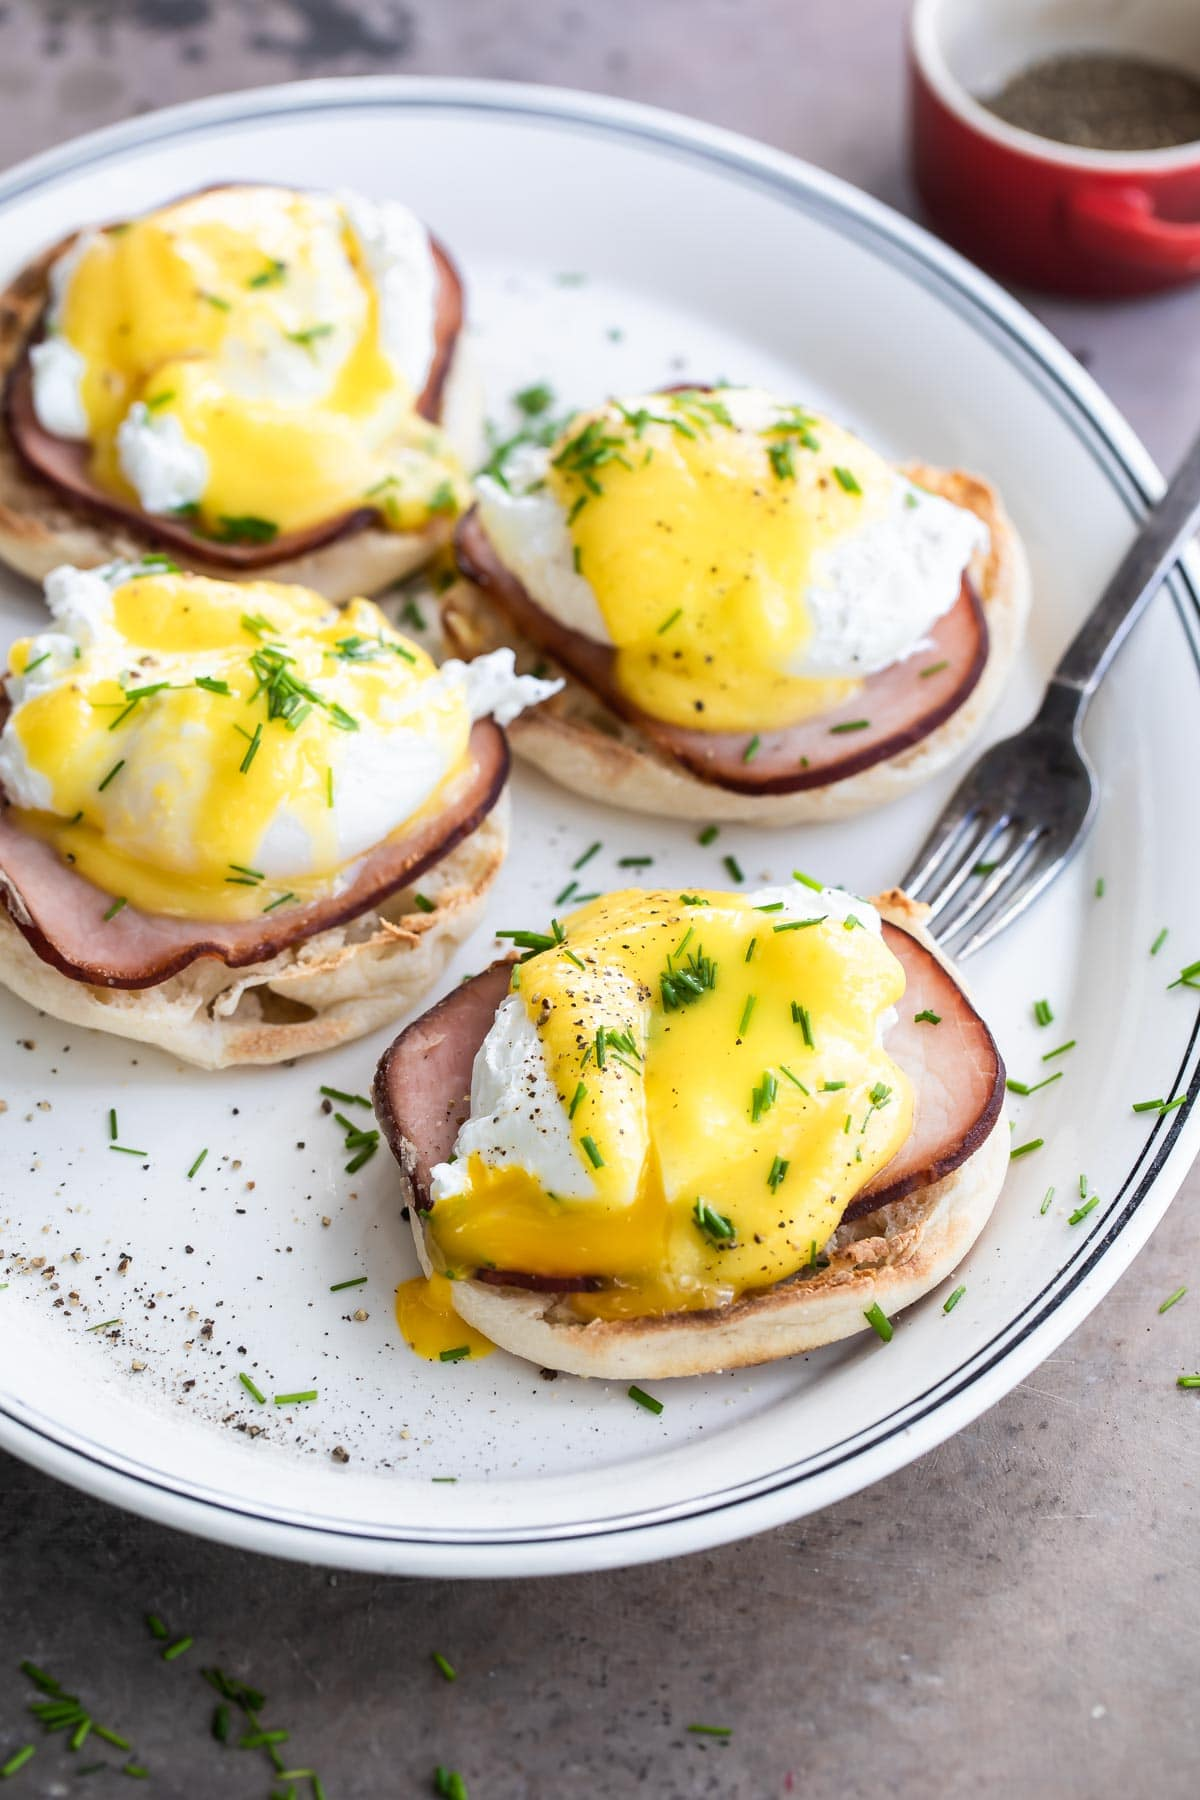 Eggs benedict on a white plate.